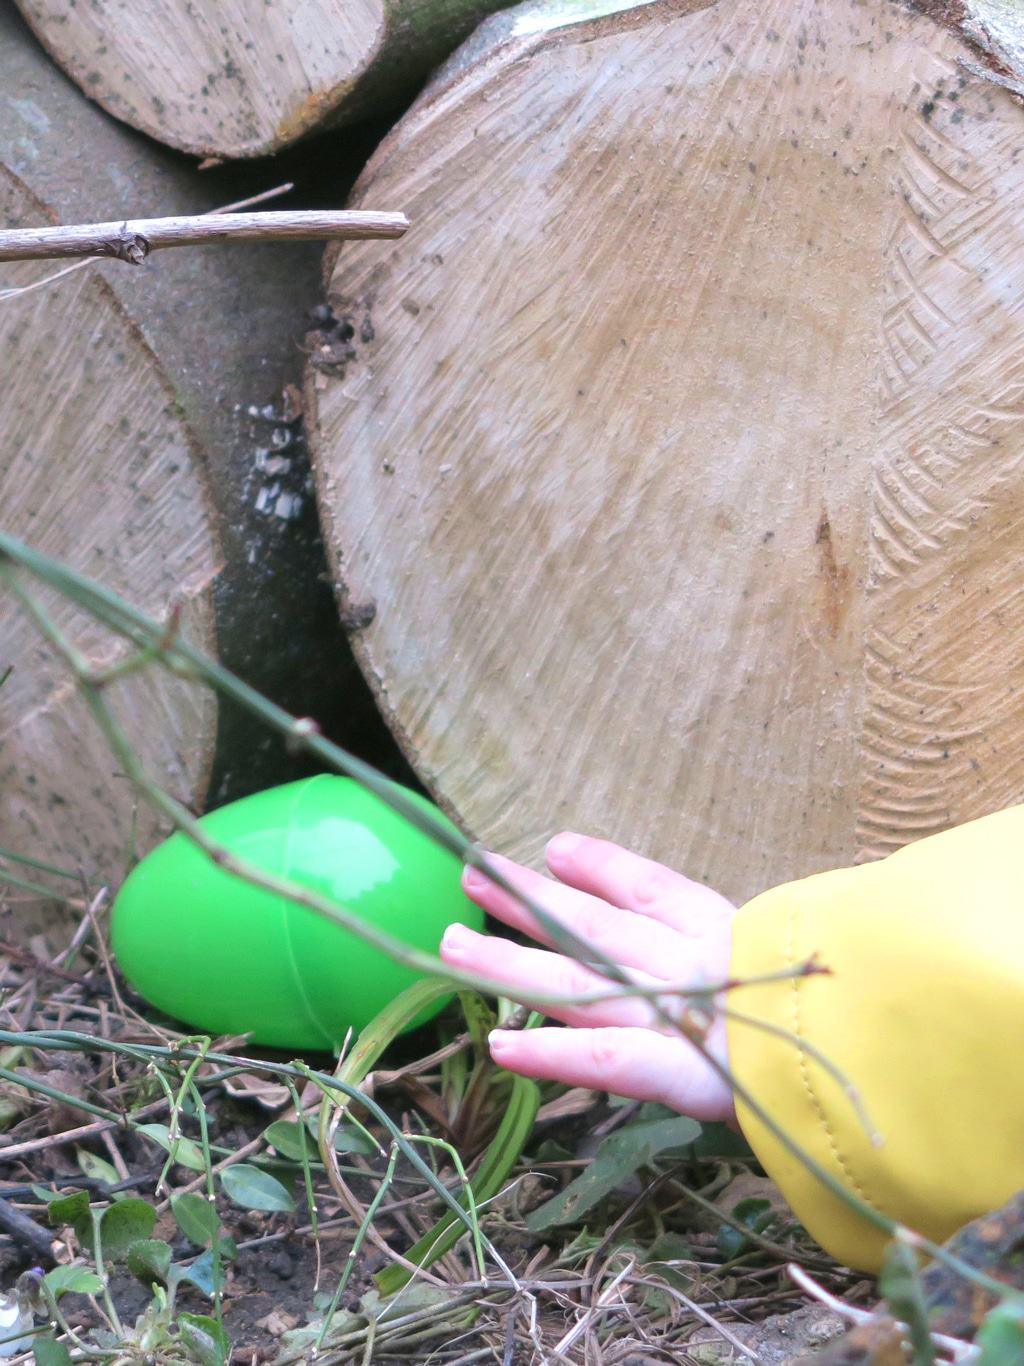 A little hand reaching for a colourful egg at an Easter egg hunt